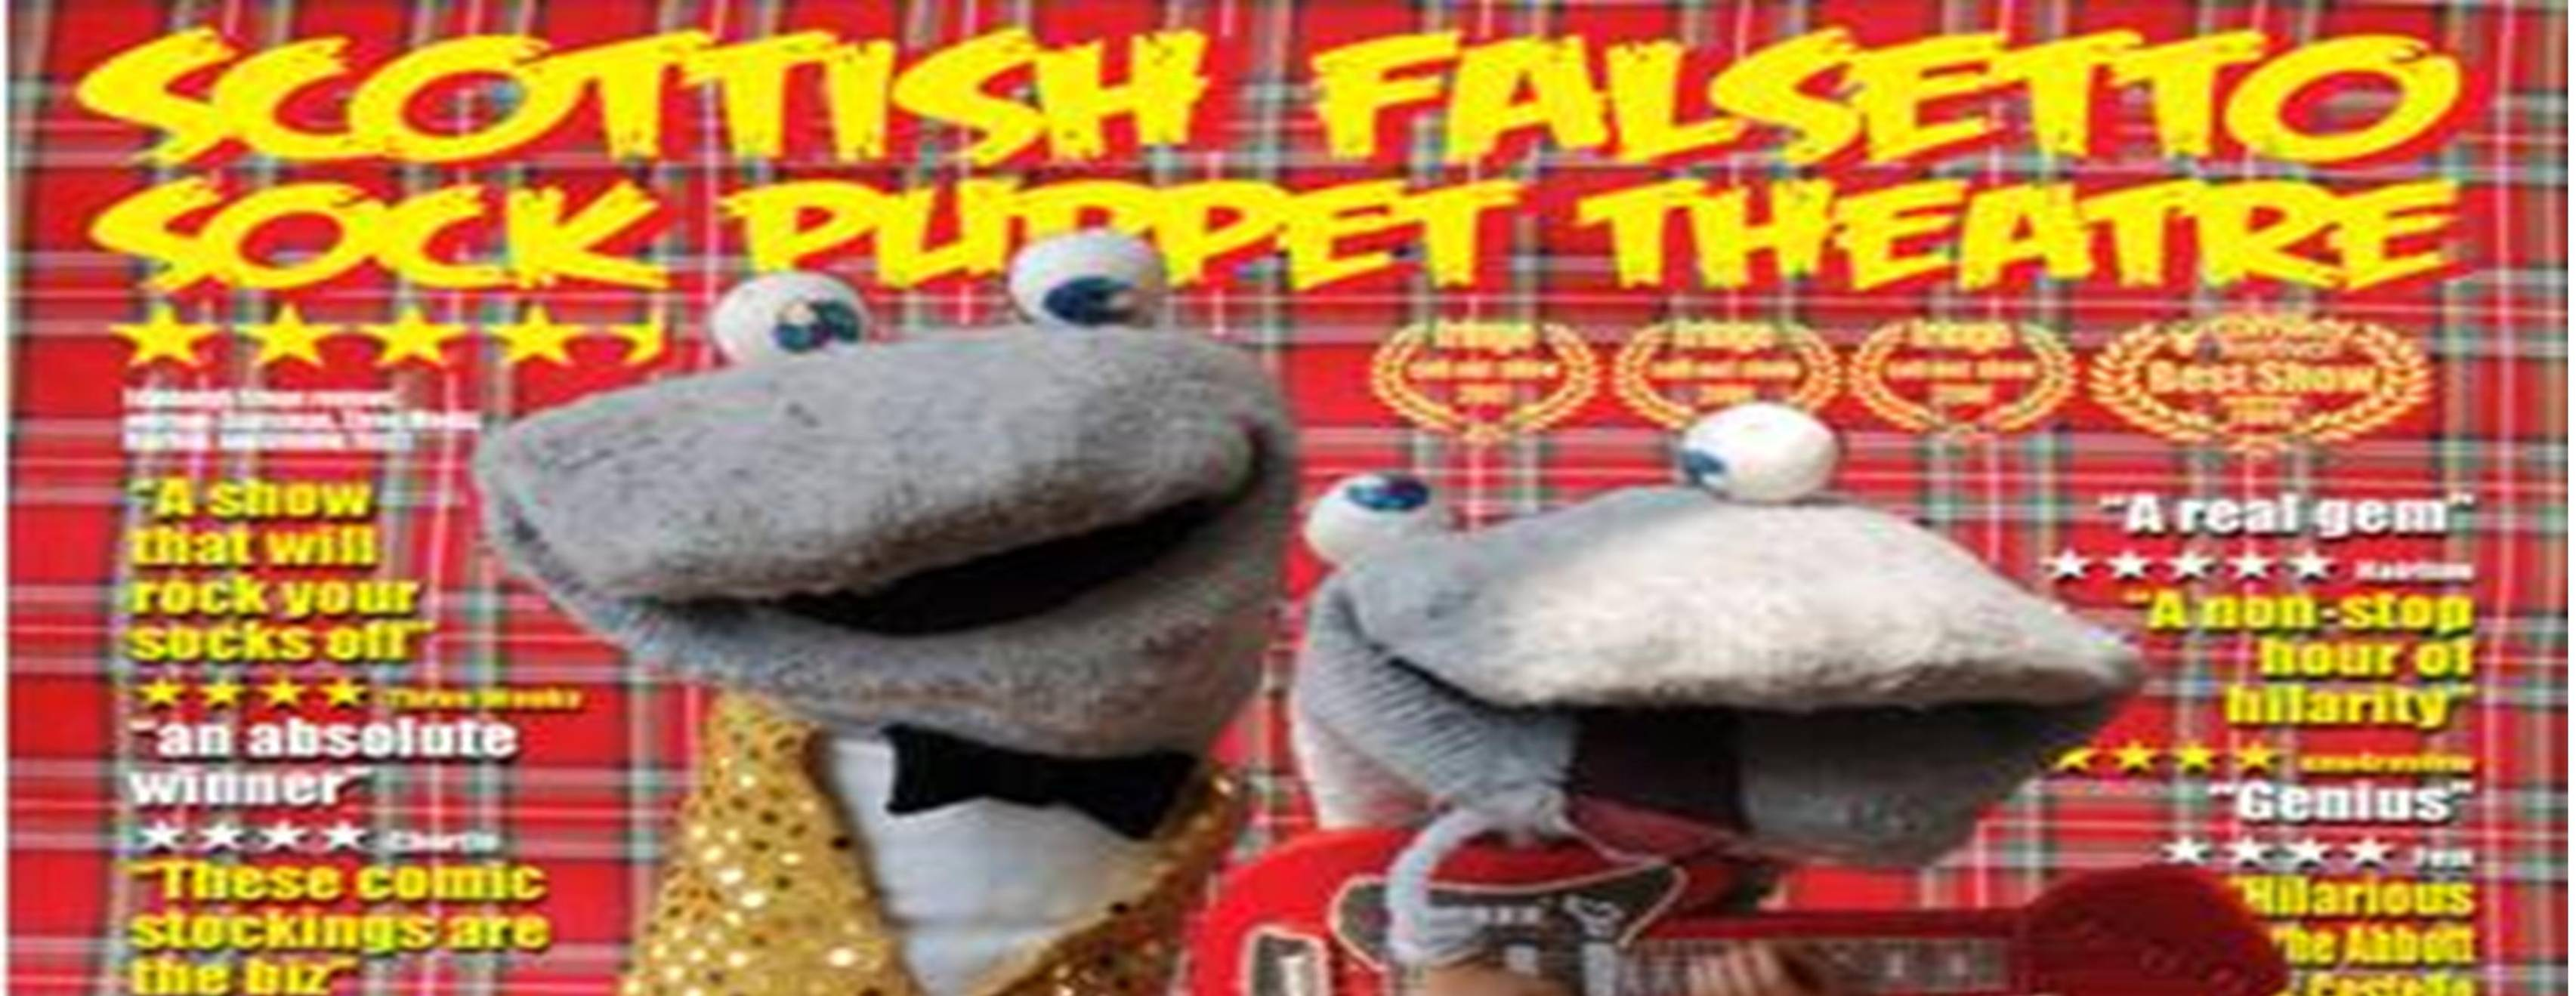 Scottish Falsetto Sock Puppet Theatre